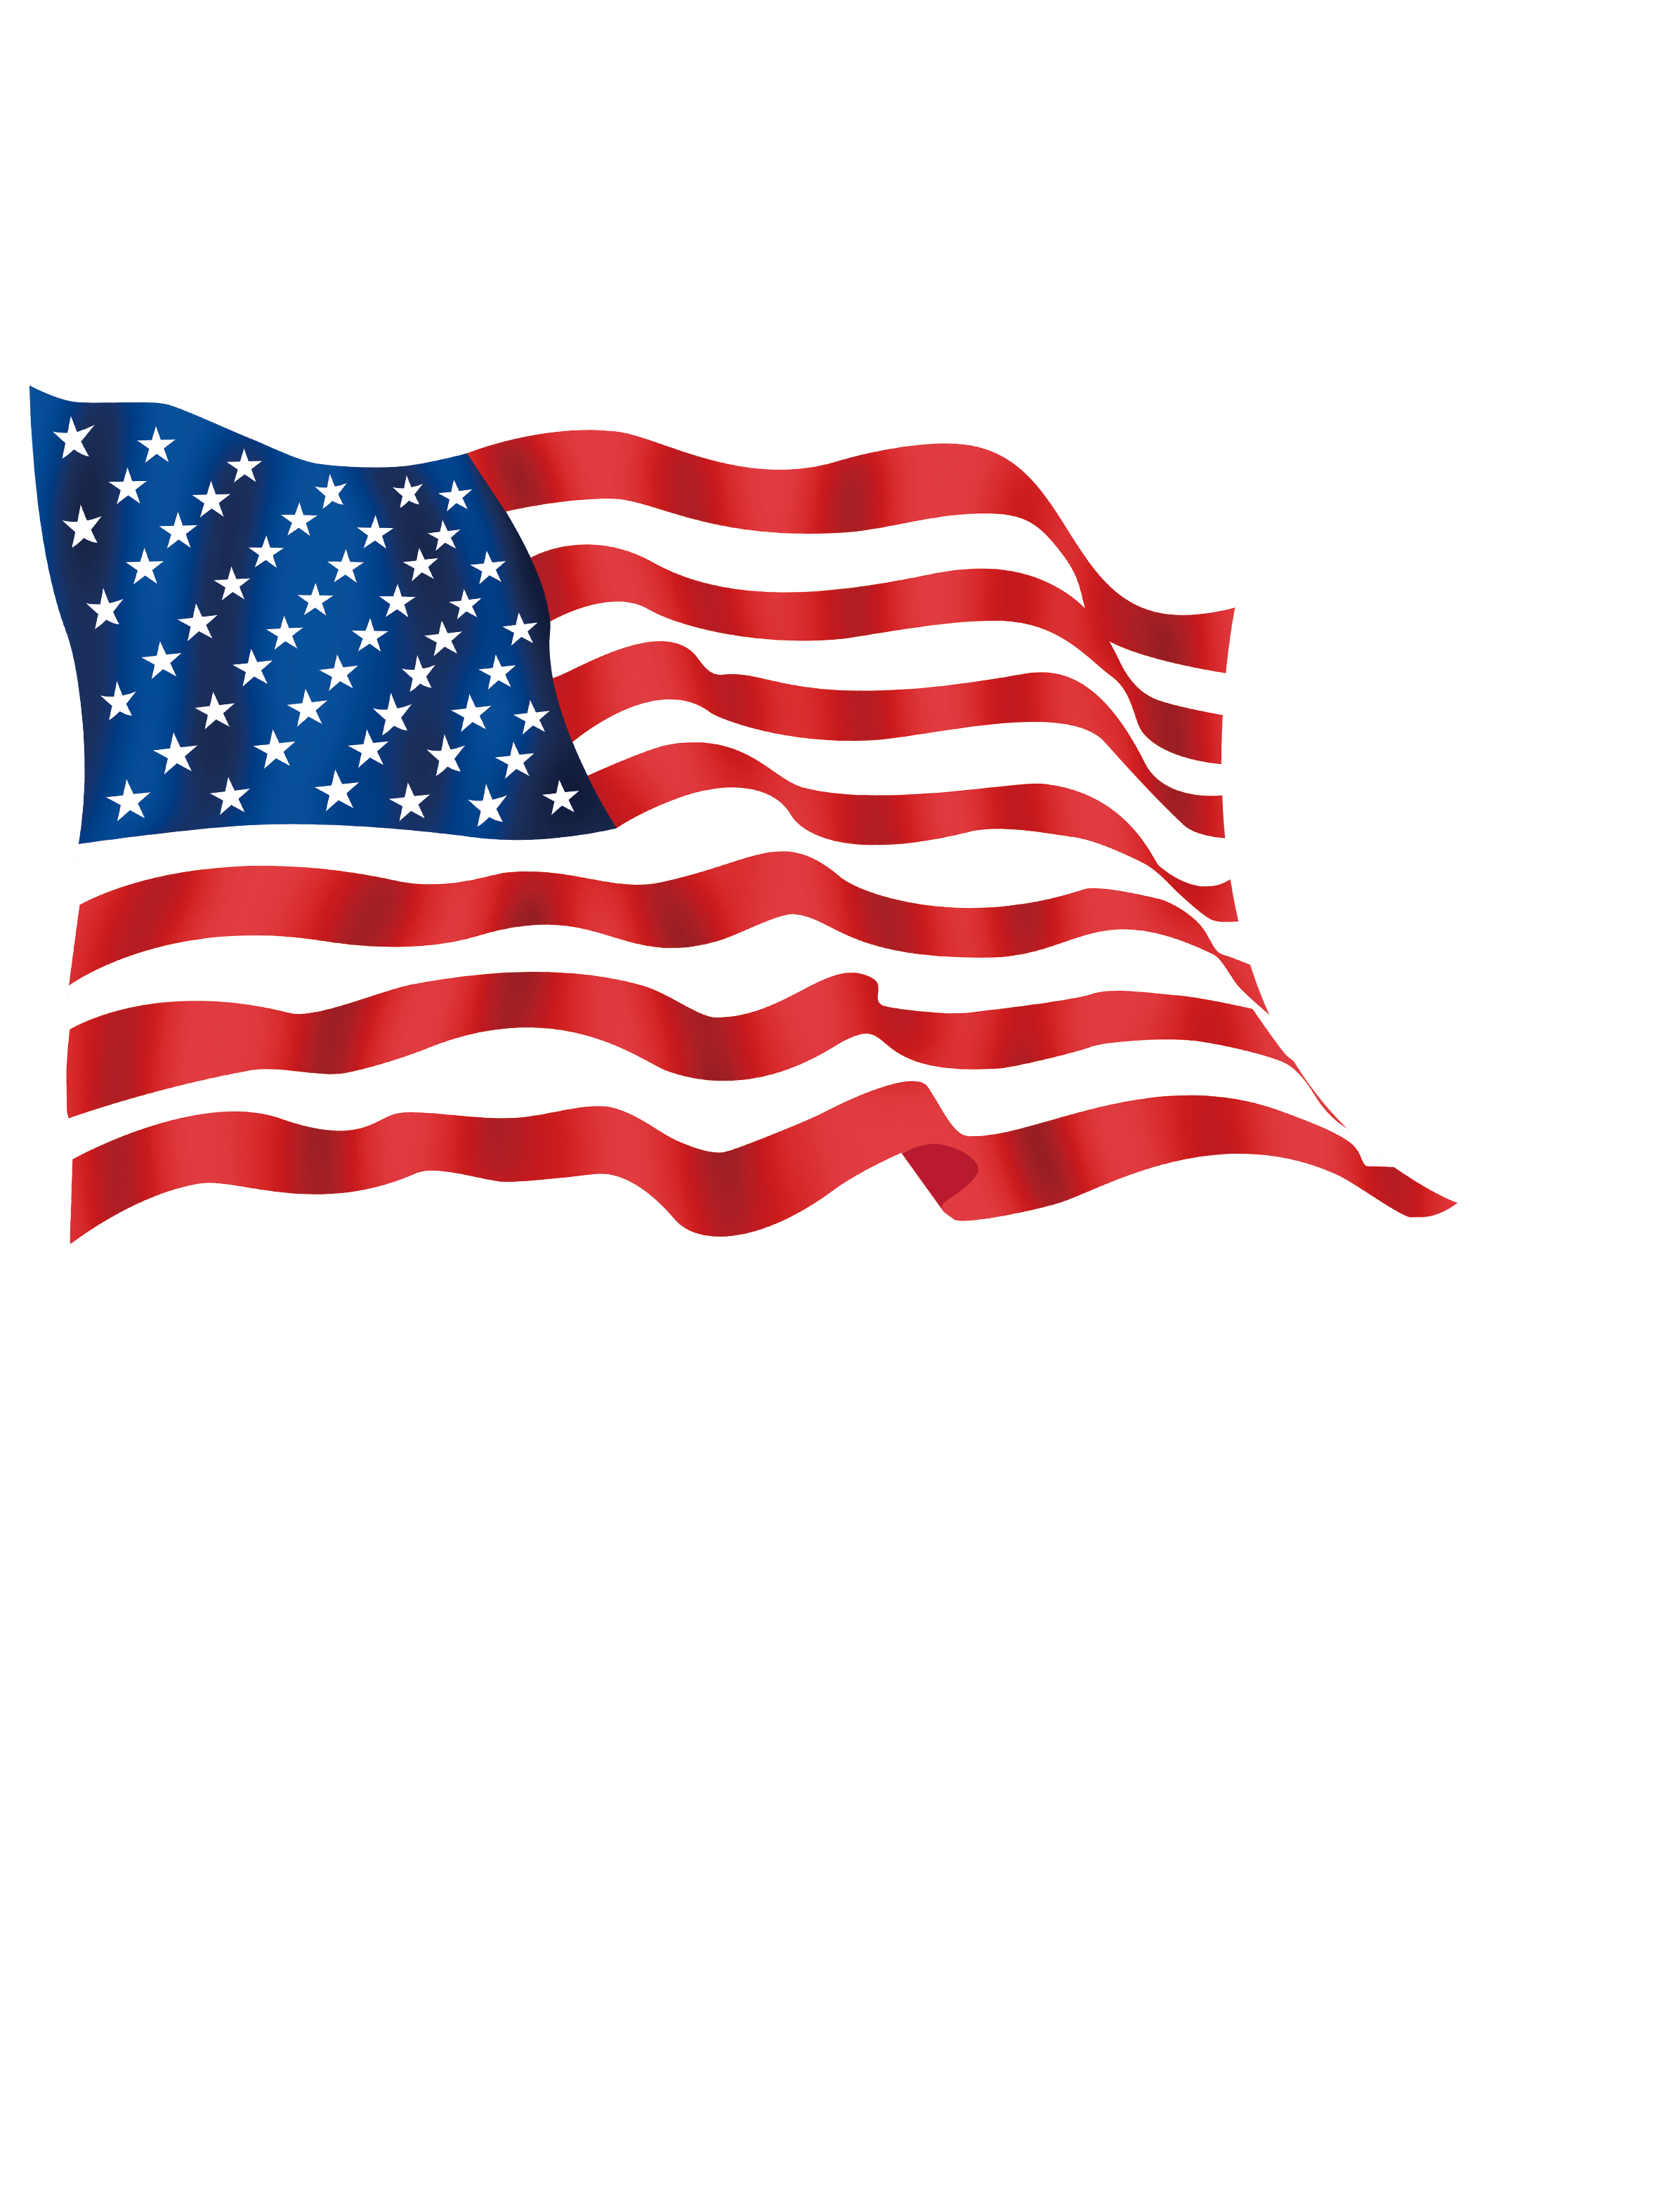 American flag - PNG Images for Download with transparency